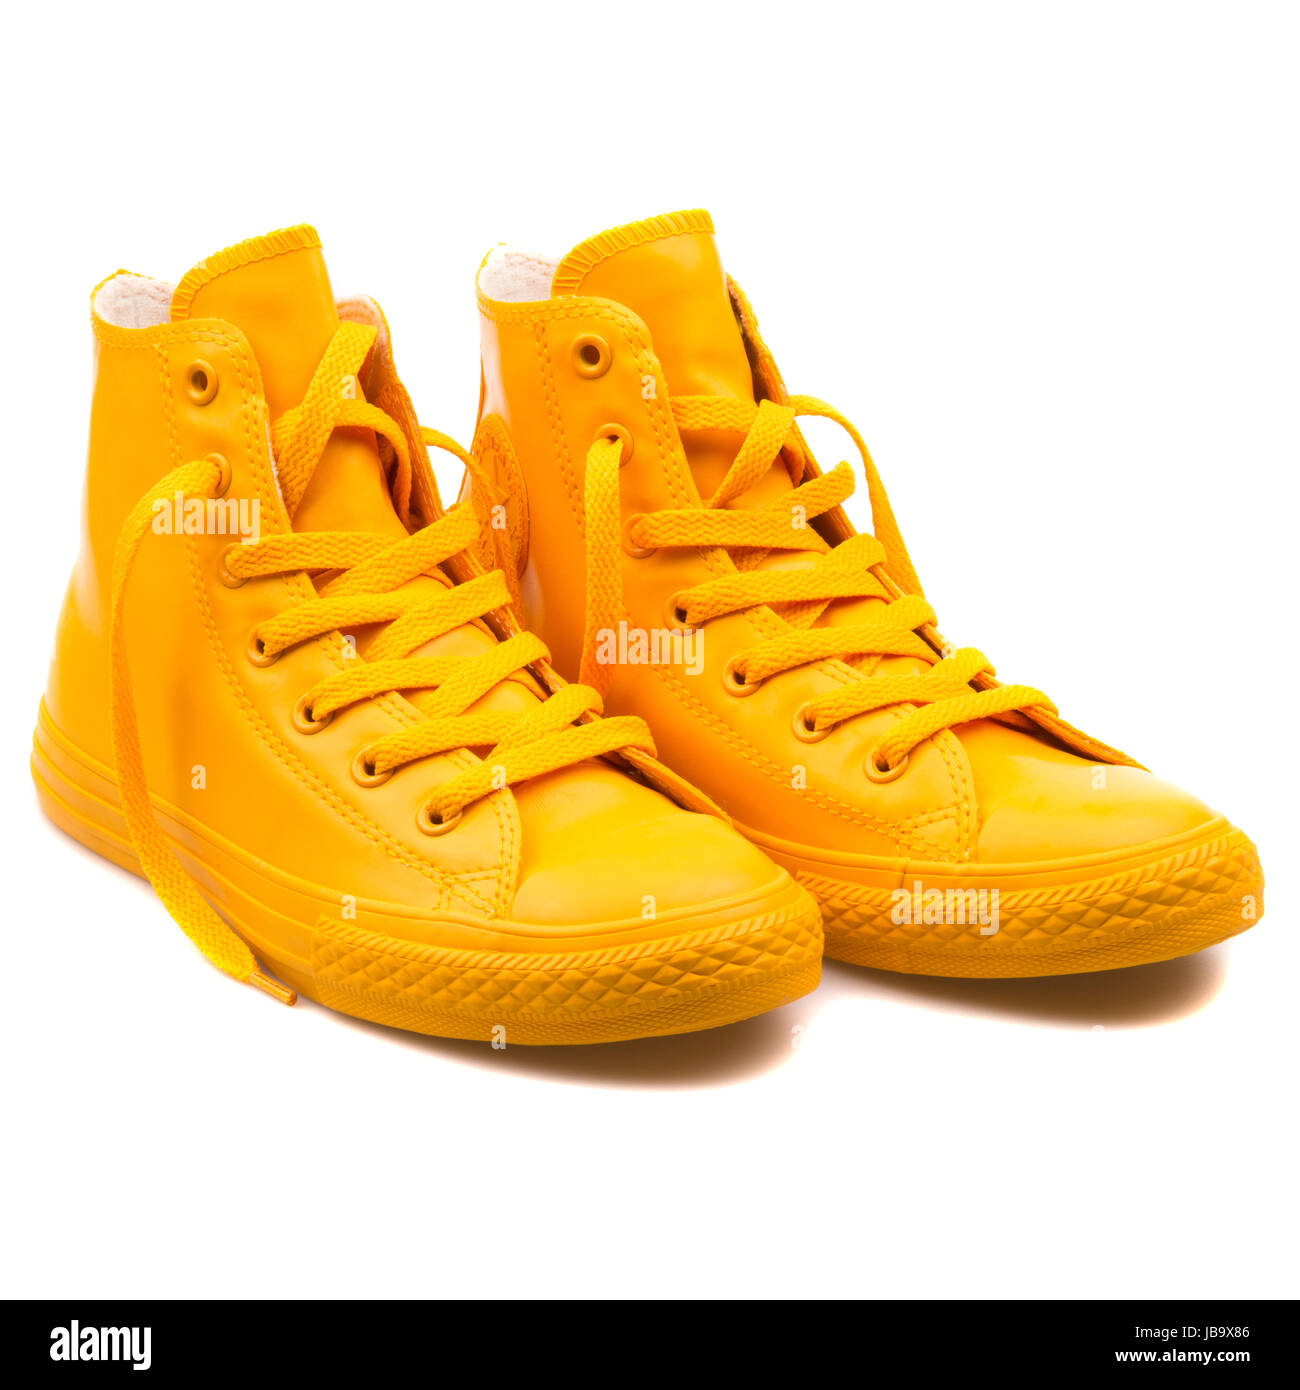 5c9419ef26af Converse Chuck Taylor All Star Hi Wild Honey Yellow Youth s Shoes - 344747C  - Stock Image